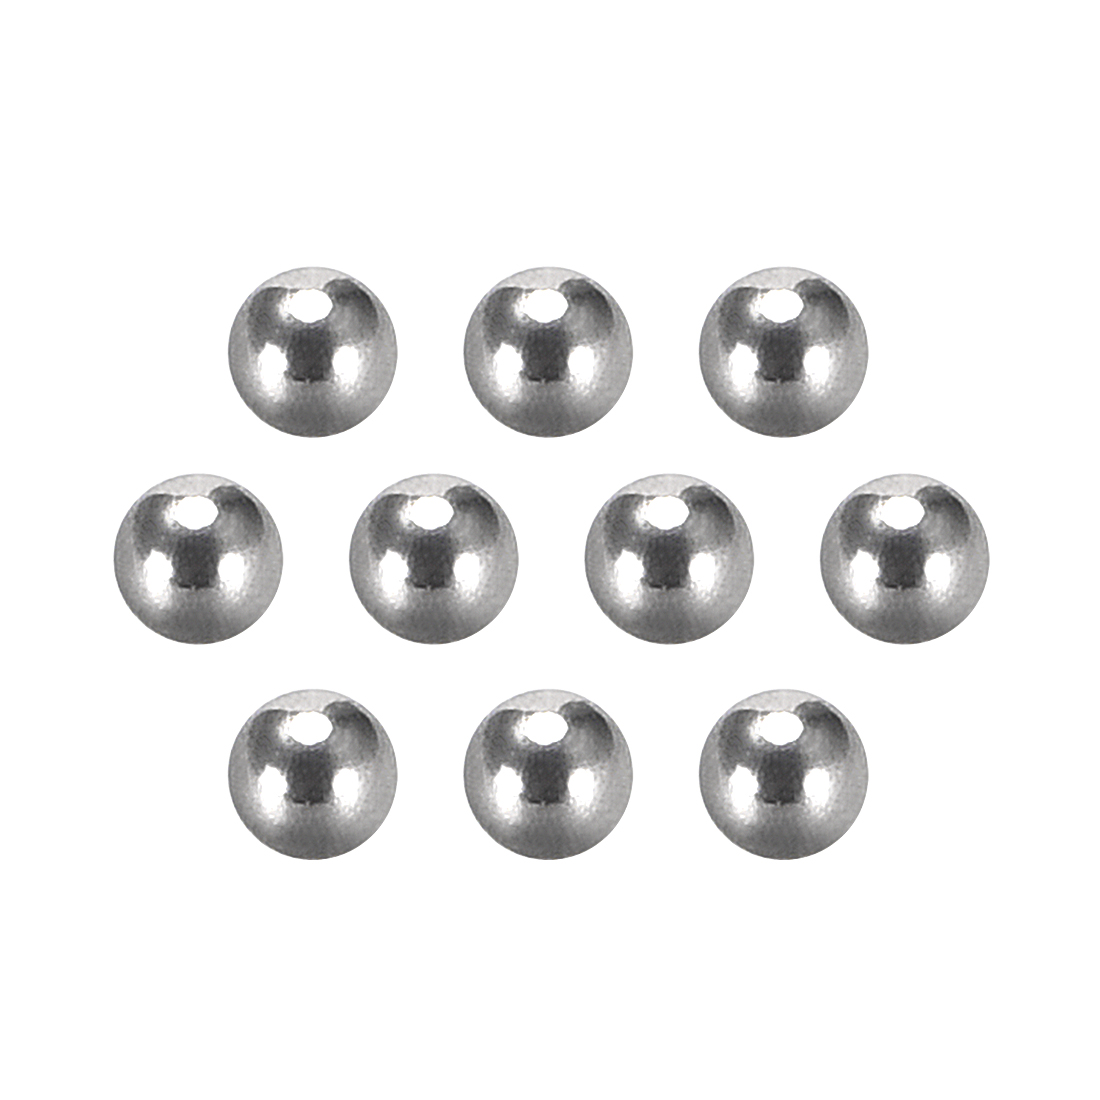 Precision 304 Stainless Steel Bearing Balls 1/16 Inch G5 10pcs